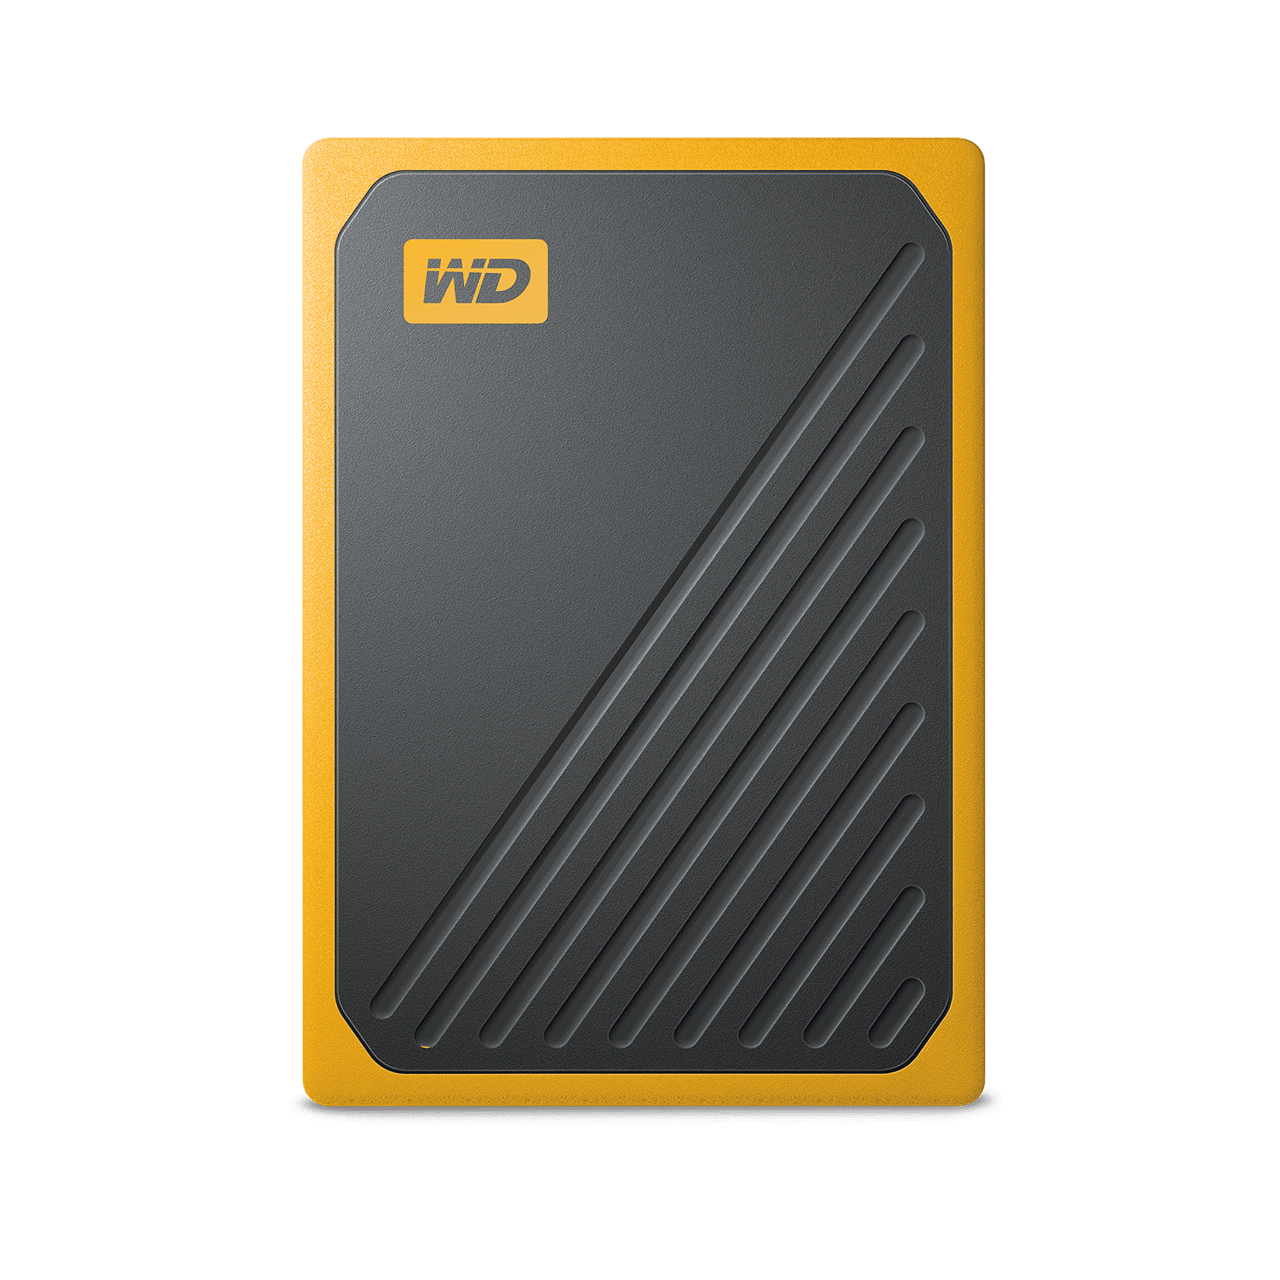 Sandisk My Passport Go 2000 GB Zwart, Oranje